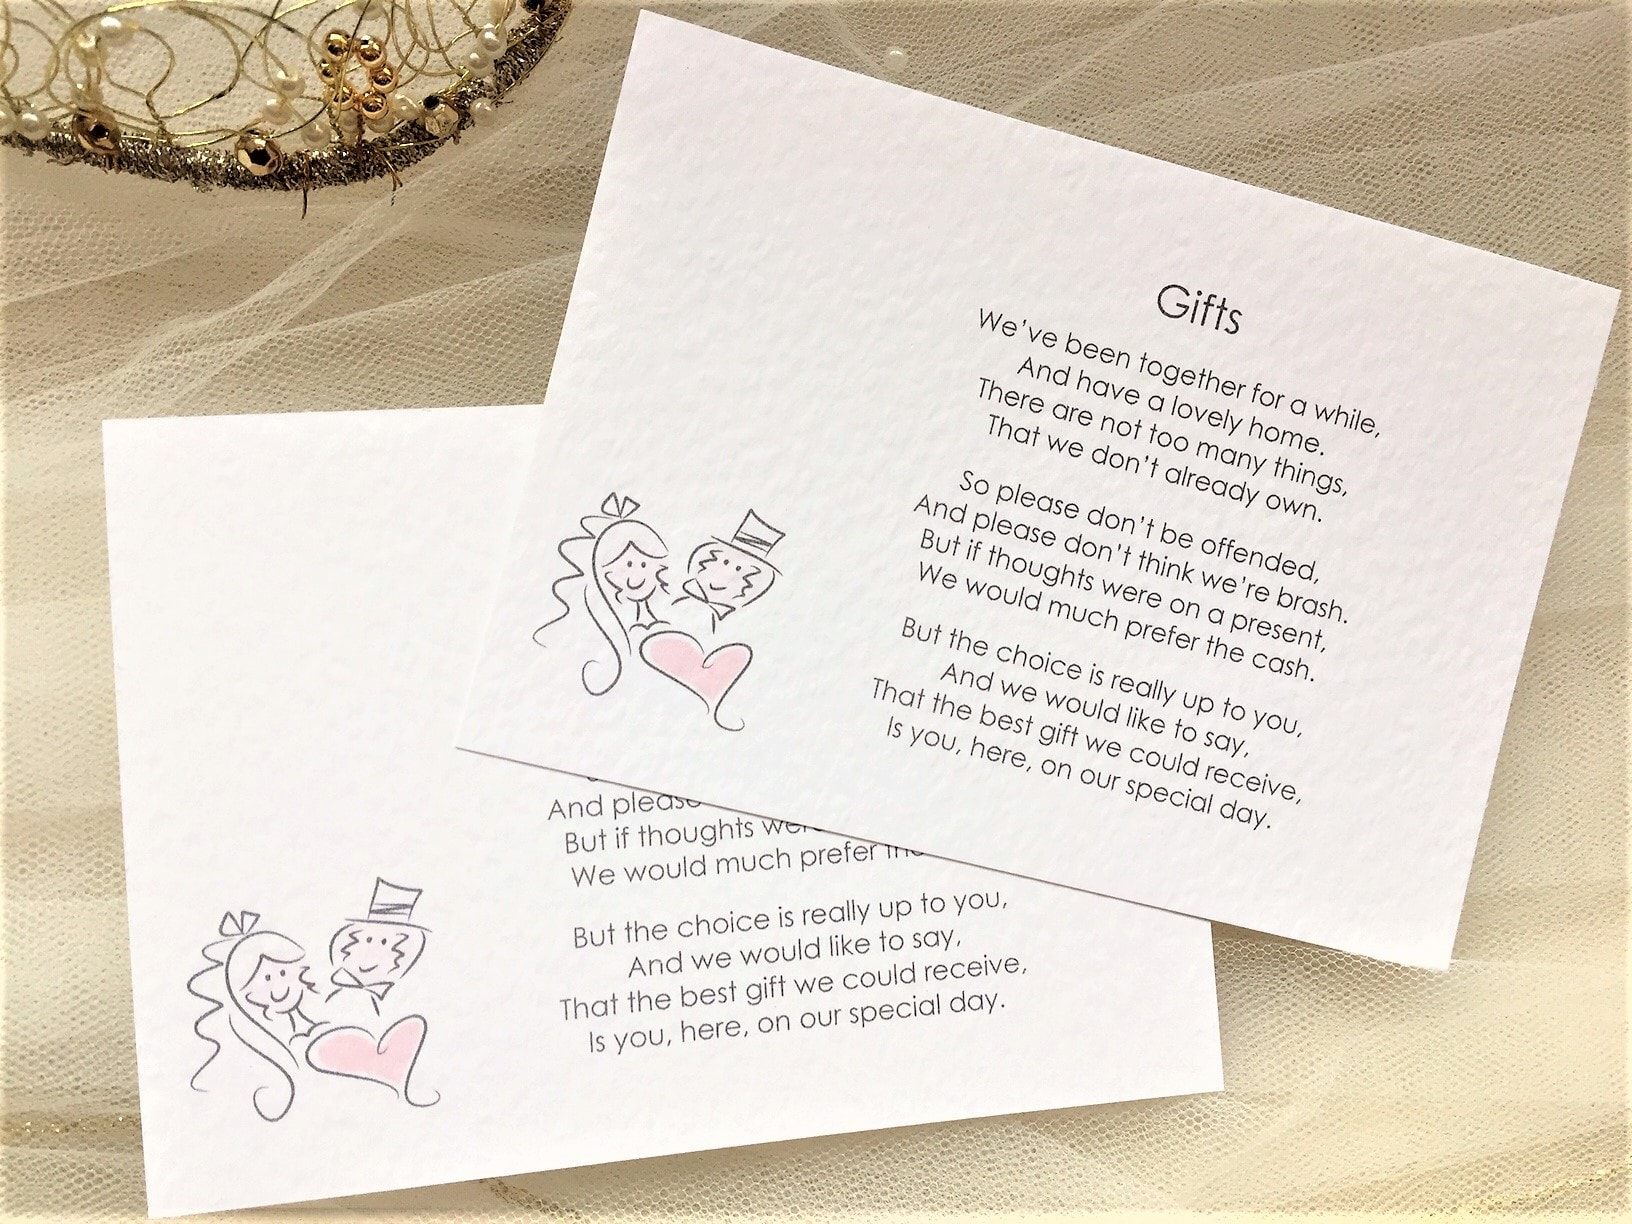 Groom Wedding Gifts From Bride: Bride And Groom Gift Cards 45p